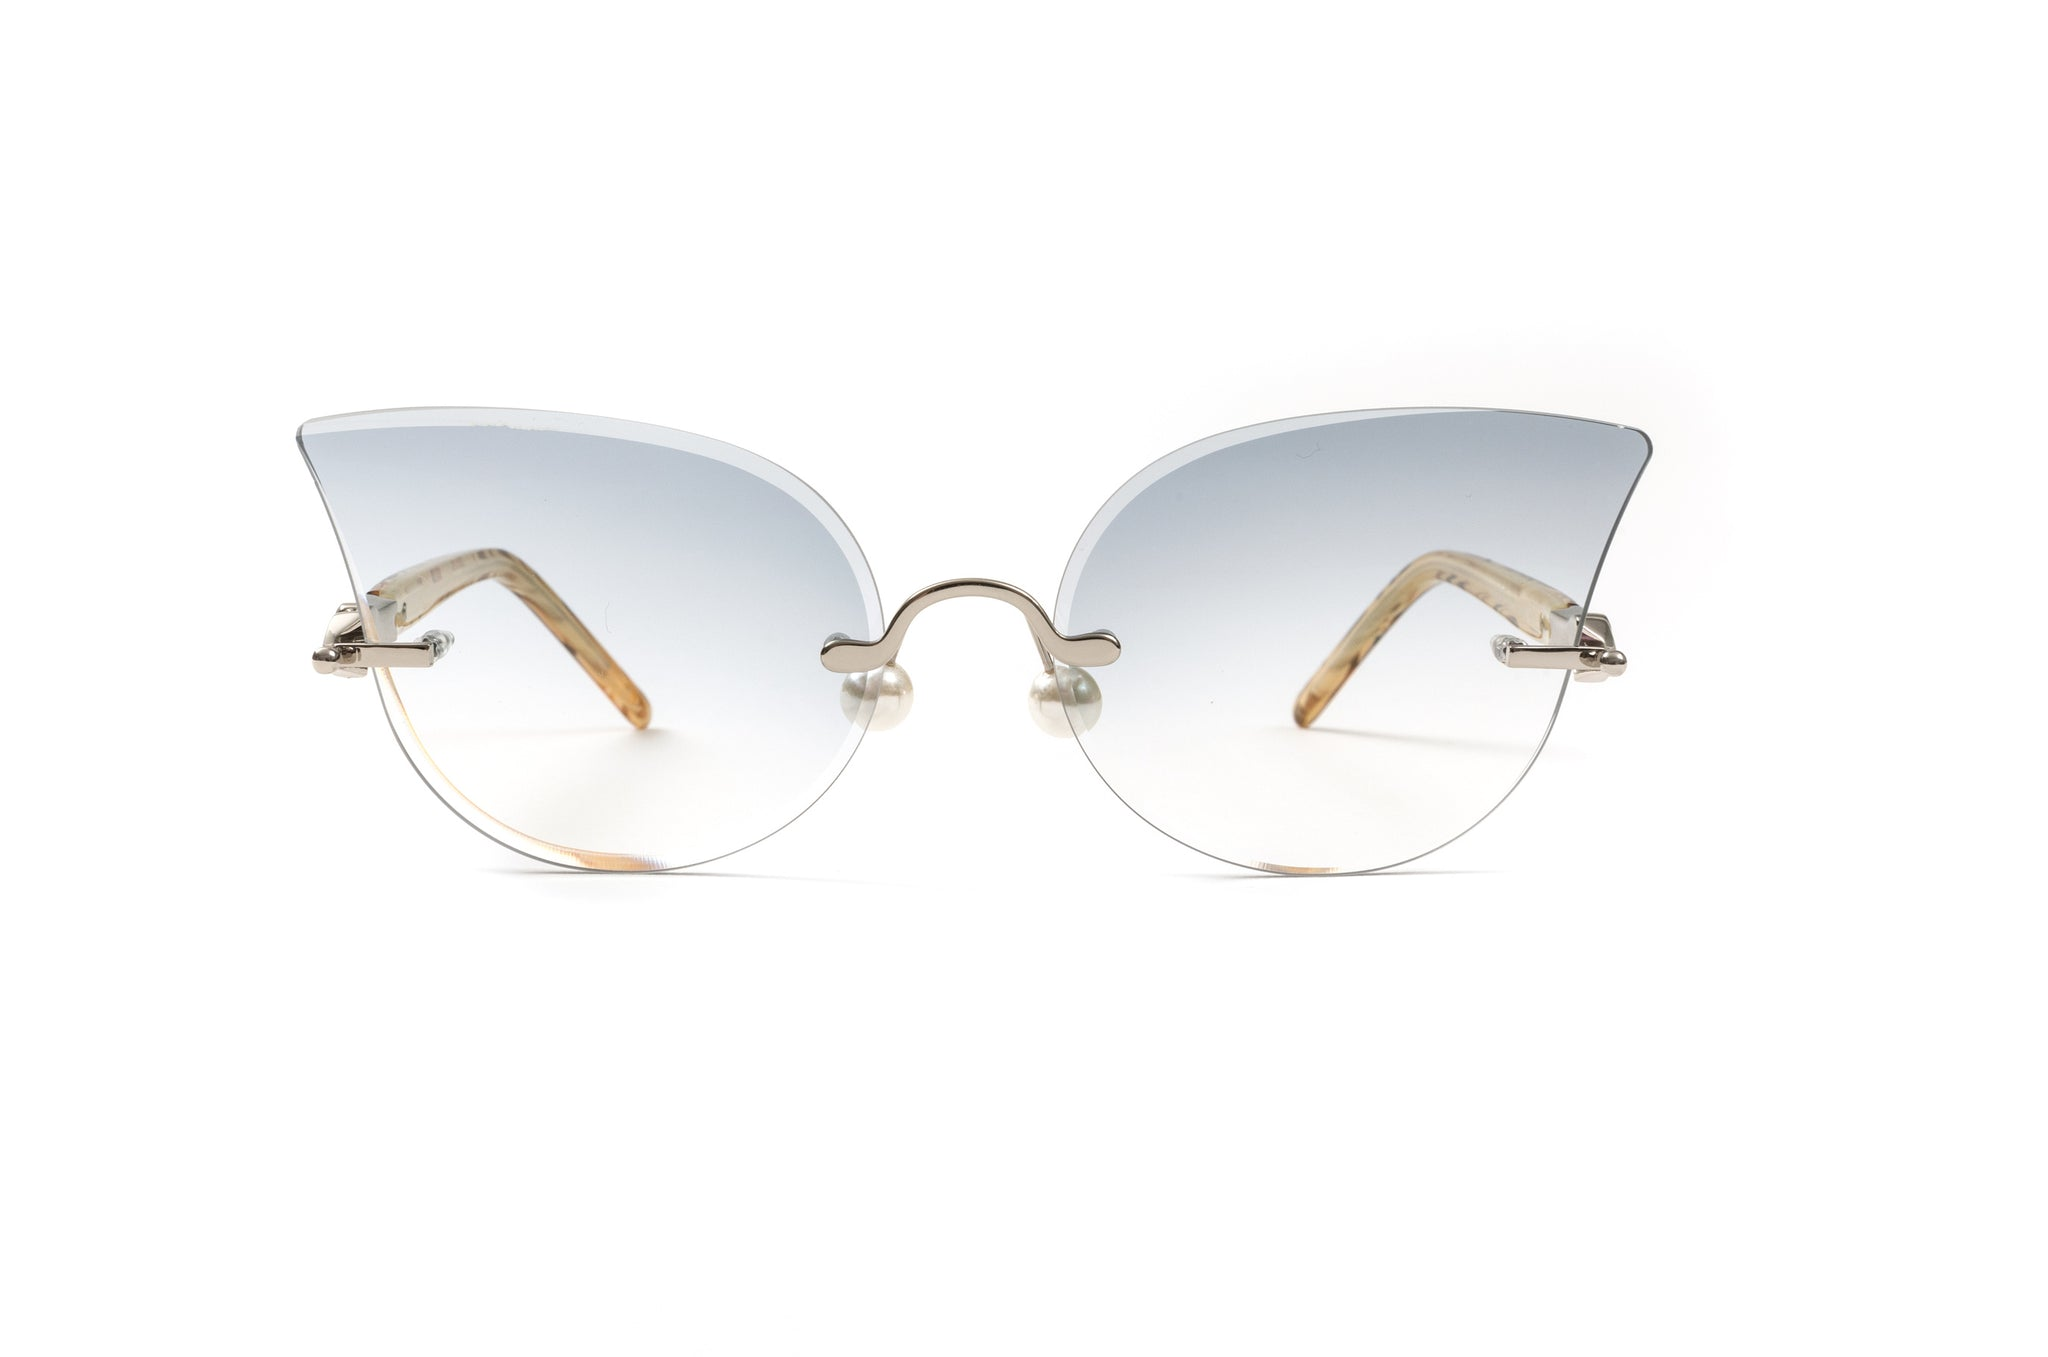 Cateye Silver Pearl Collection Sunglasses, Tortoise Acetate